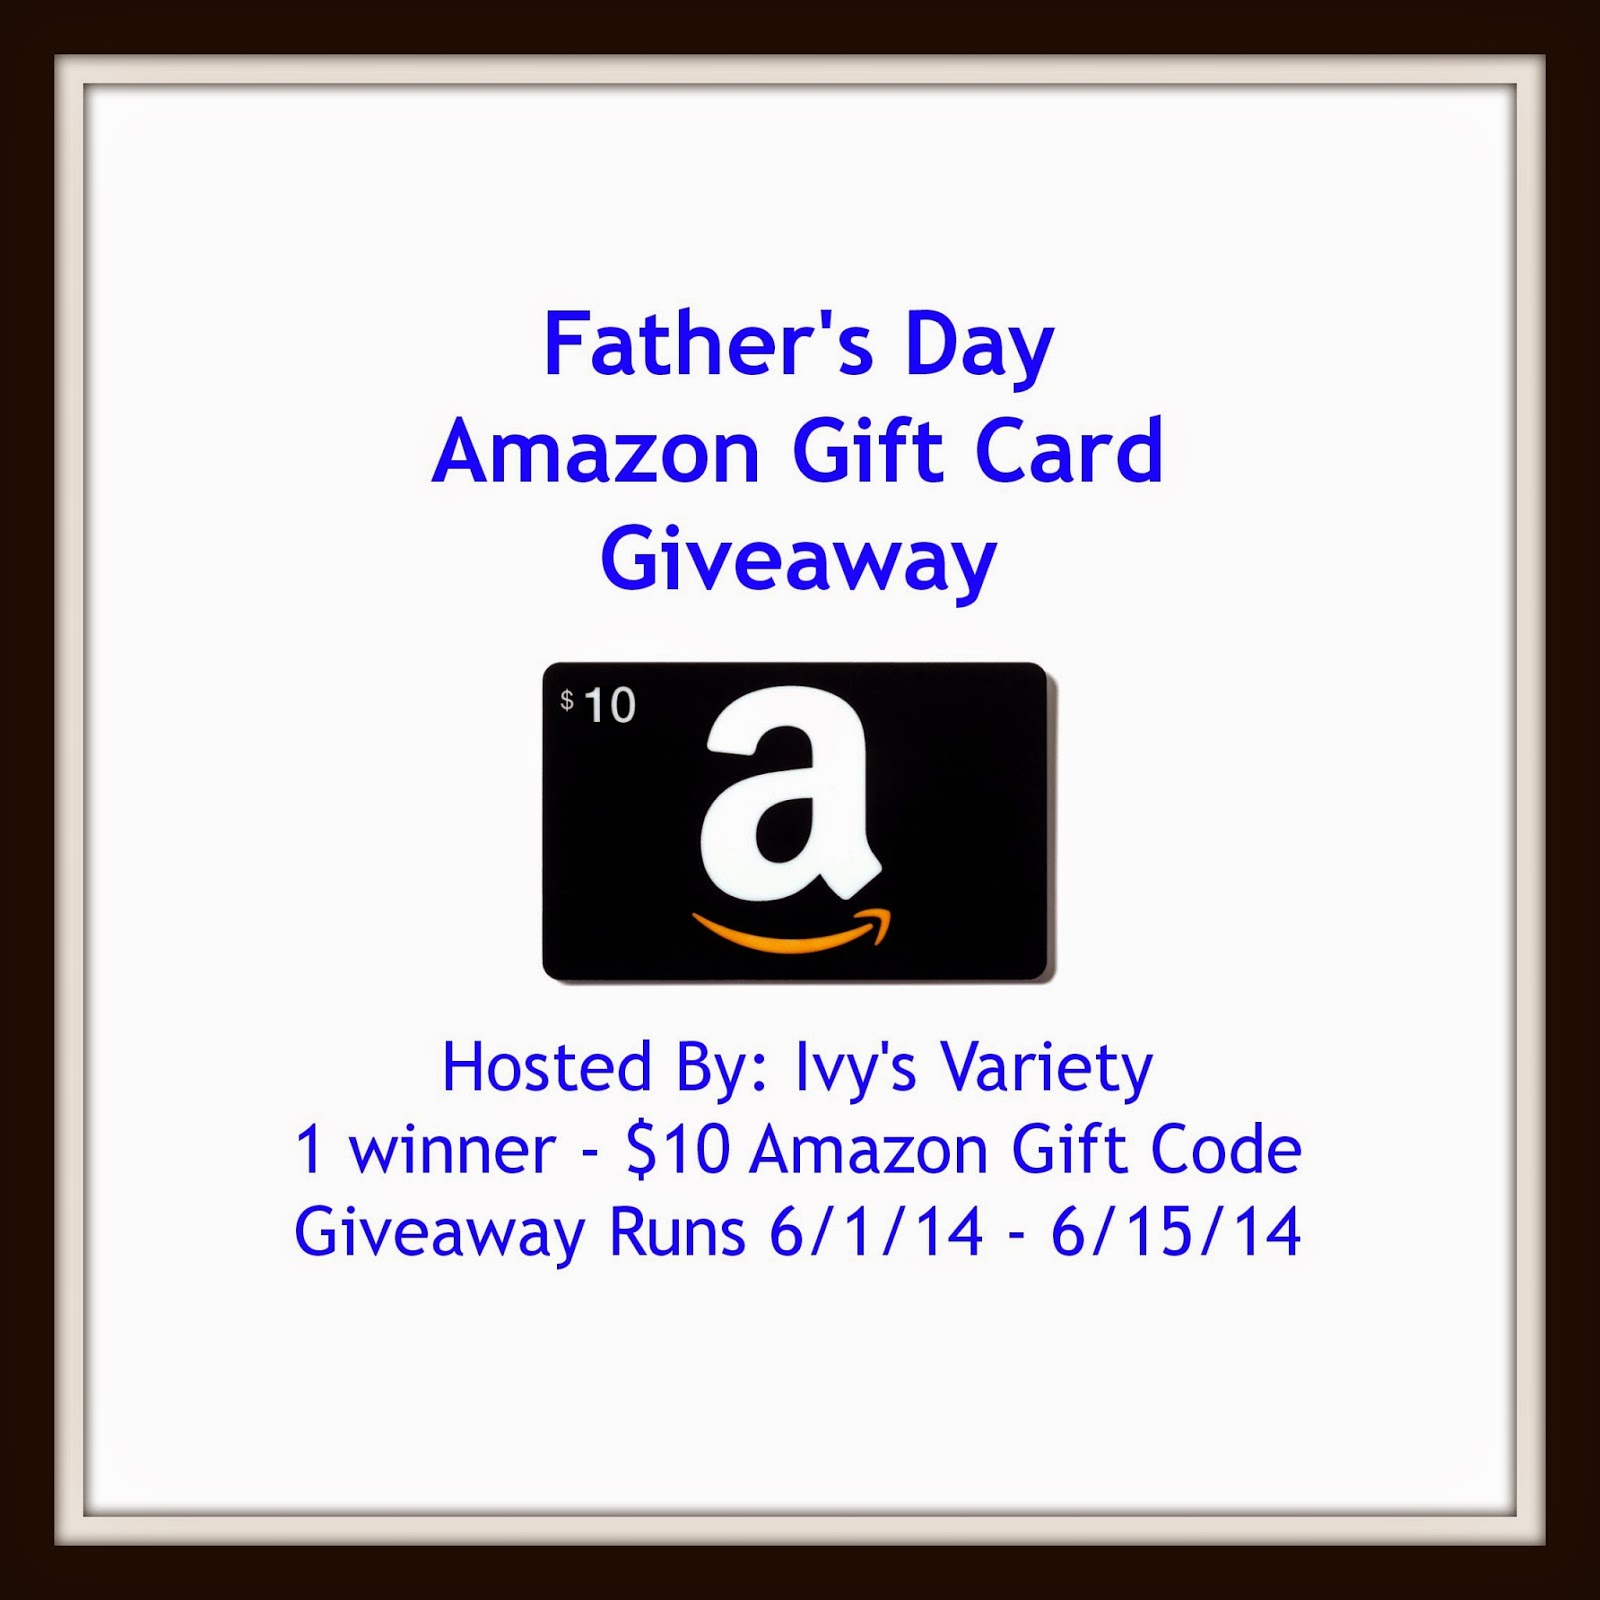 Amazon Gift Code Father's Day Giveaway